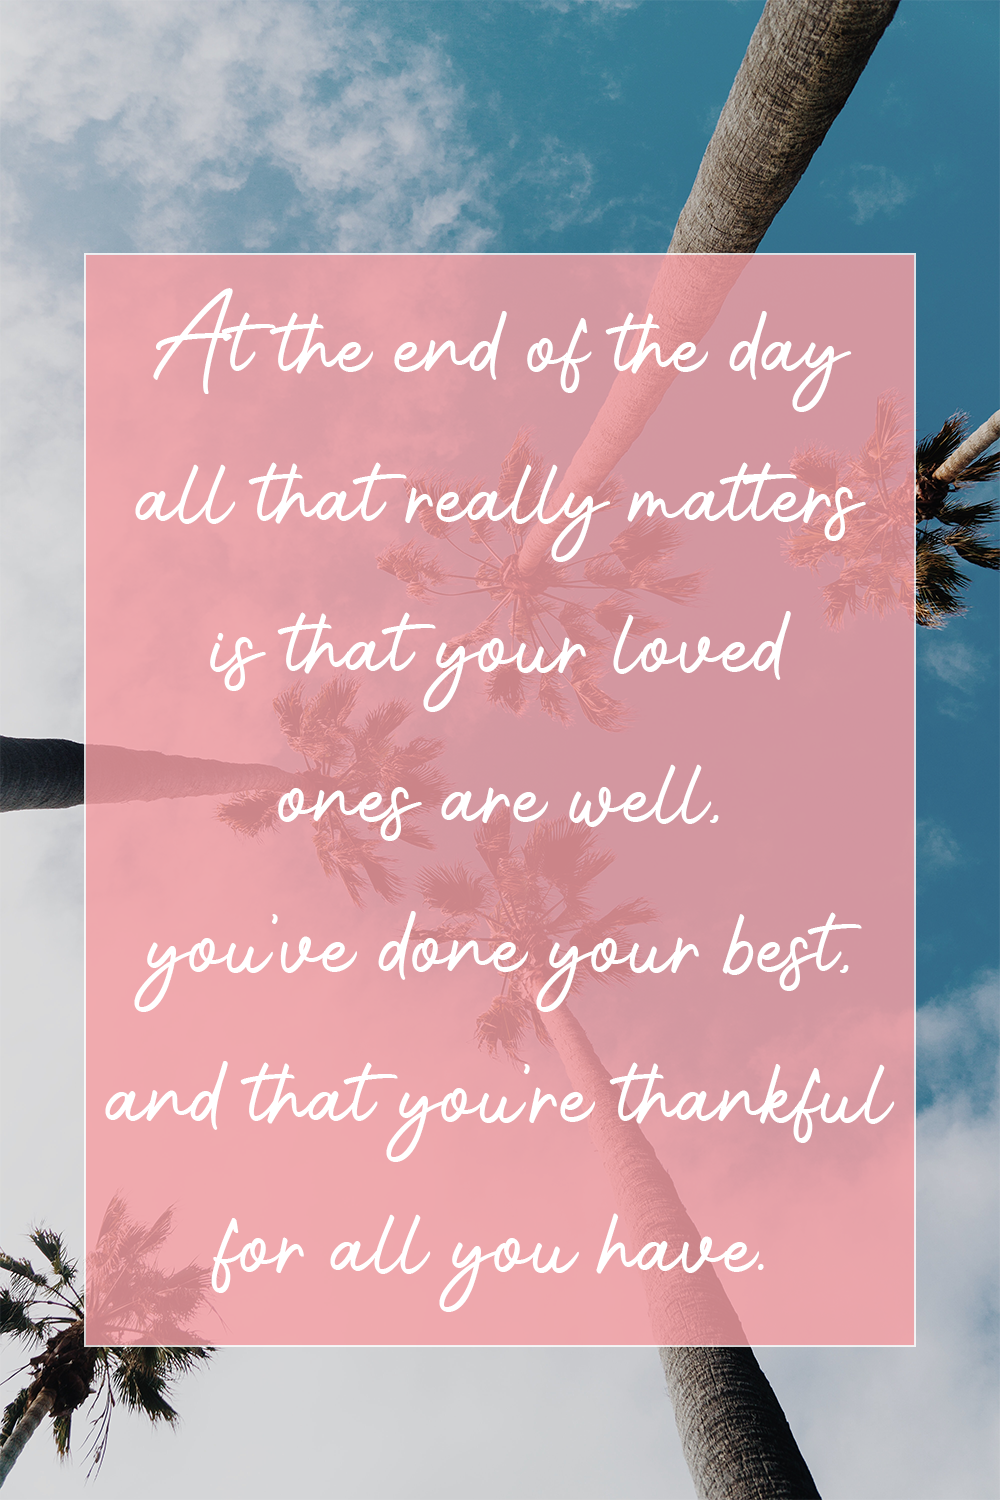 At the end of the day all that really matters is that your loved ones are well, you've done your best, and that you're thankful for all you have. HAYLEYXMARTIN